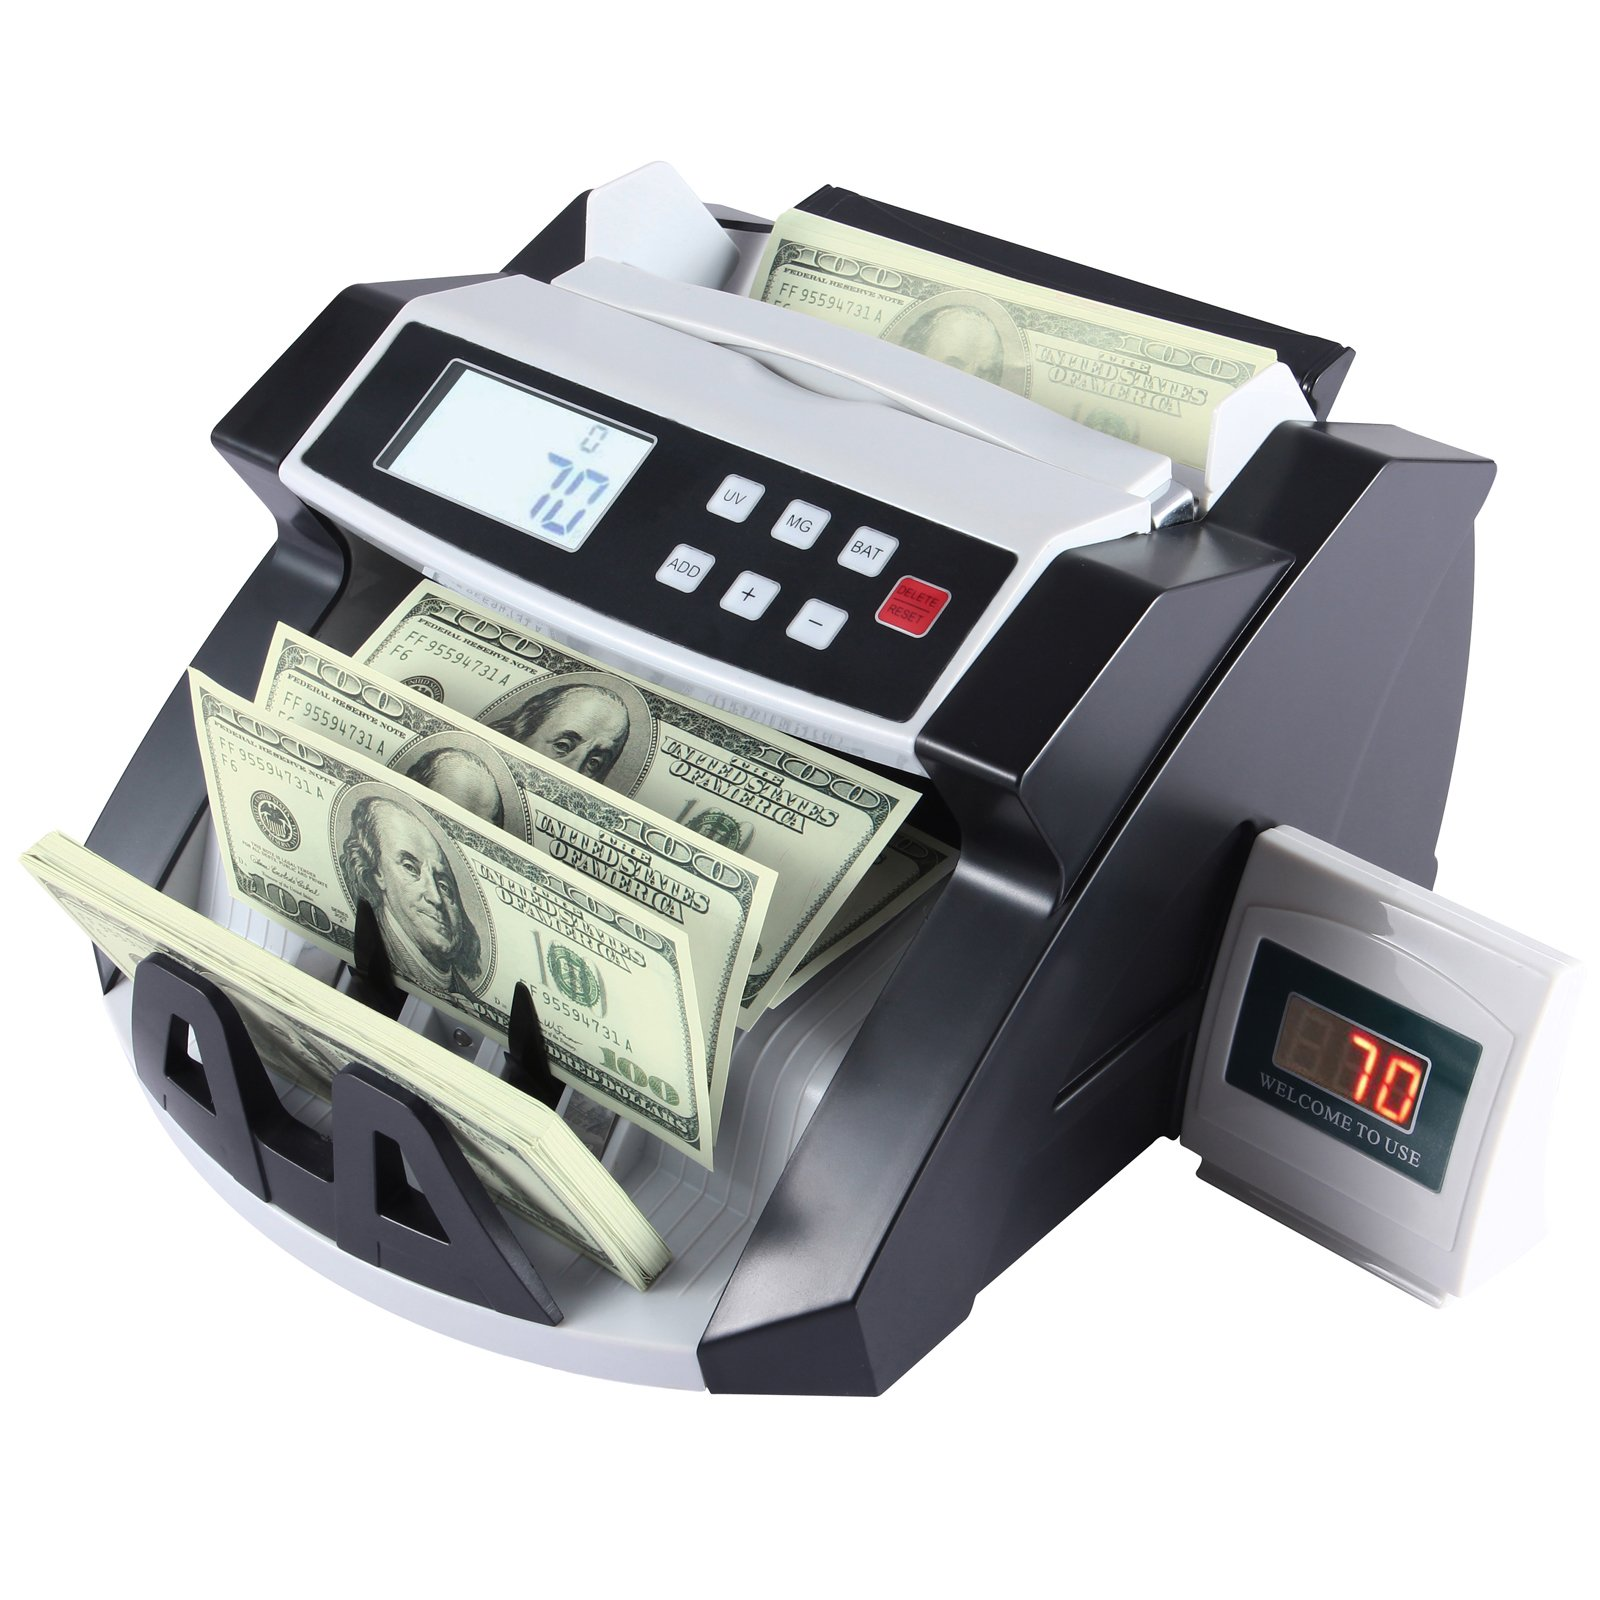 KUPPET Automatic Money Currency Cash Counting Machine Worldwide Cash Bill Counter-Bank Counterfeit Detector with with UV/MG Counterfeit Detection and LCD Display-Black